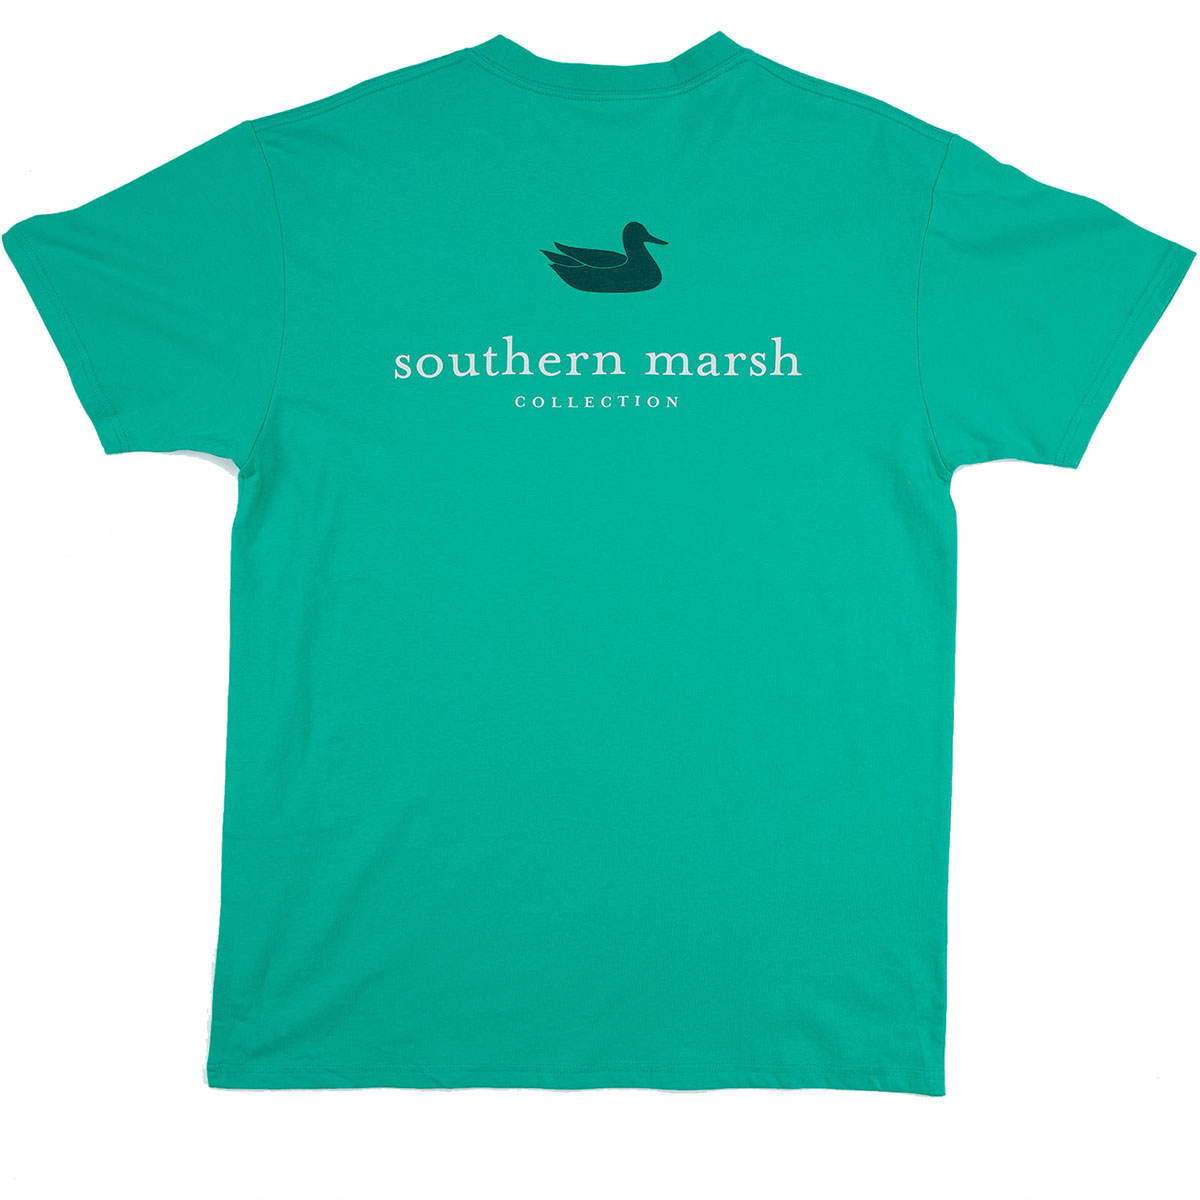 AdLooking For Tee Shirt? Free Shipping-On $75+. Buy Now!